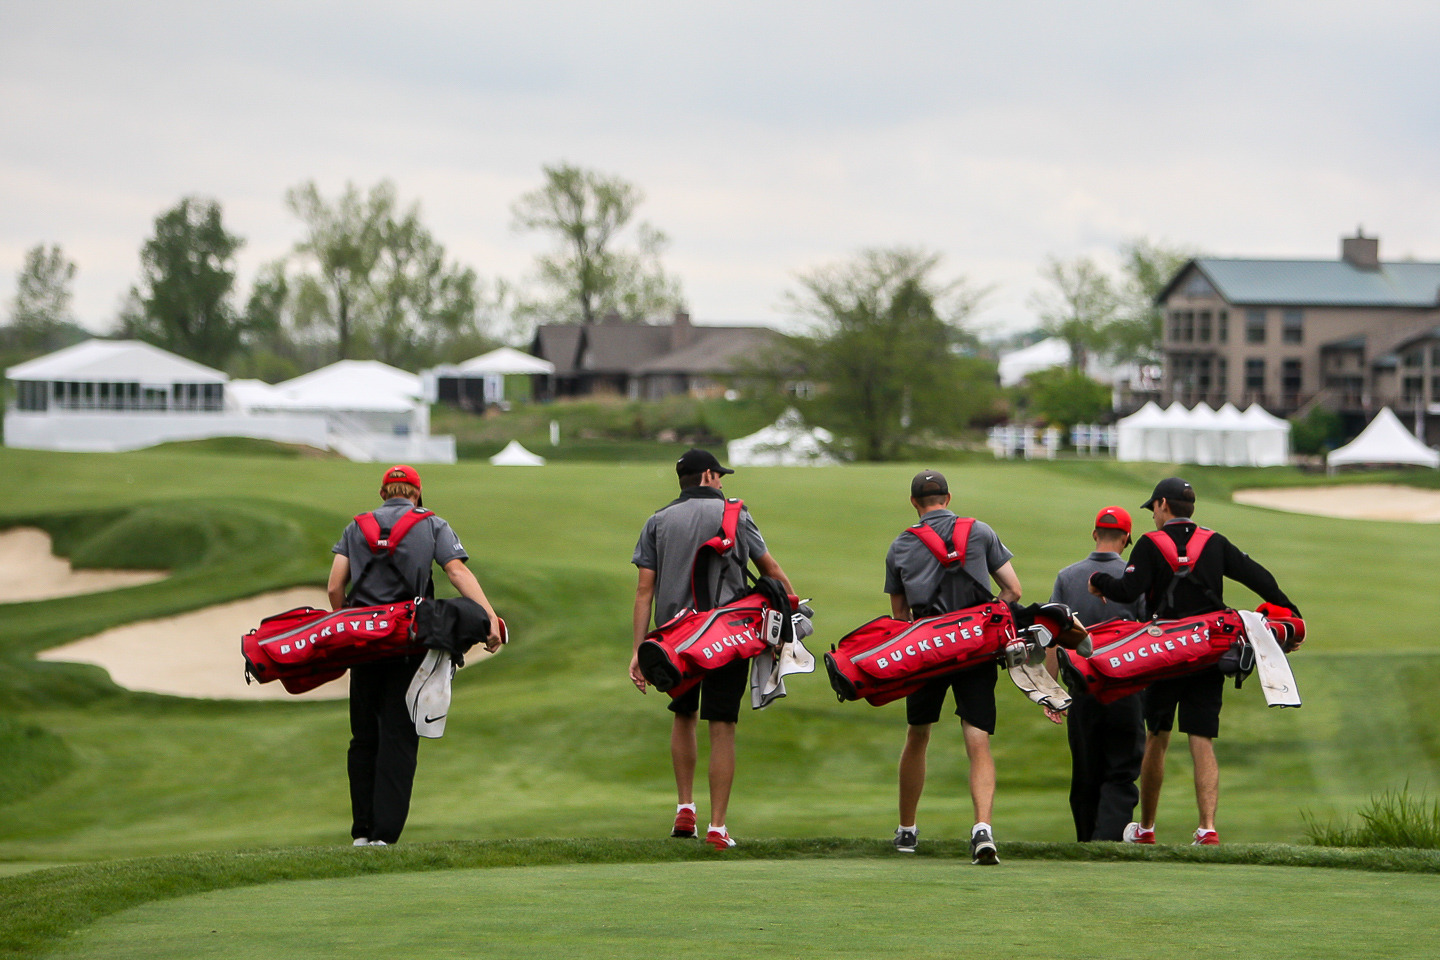 2016 Big Ten Championships - Practice Round - Victoria National Golf Course(Photos by Kenneth May)